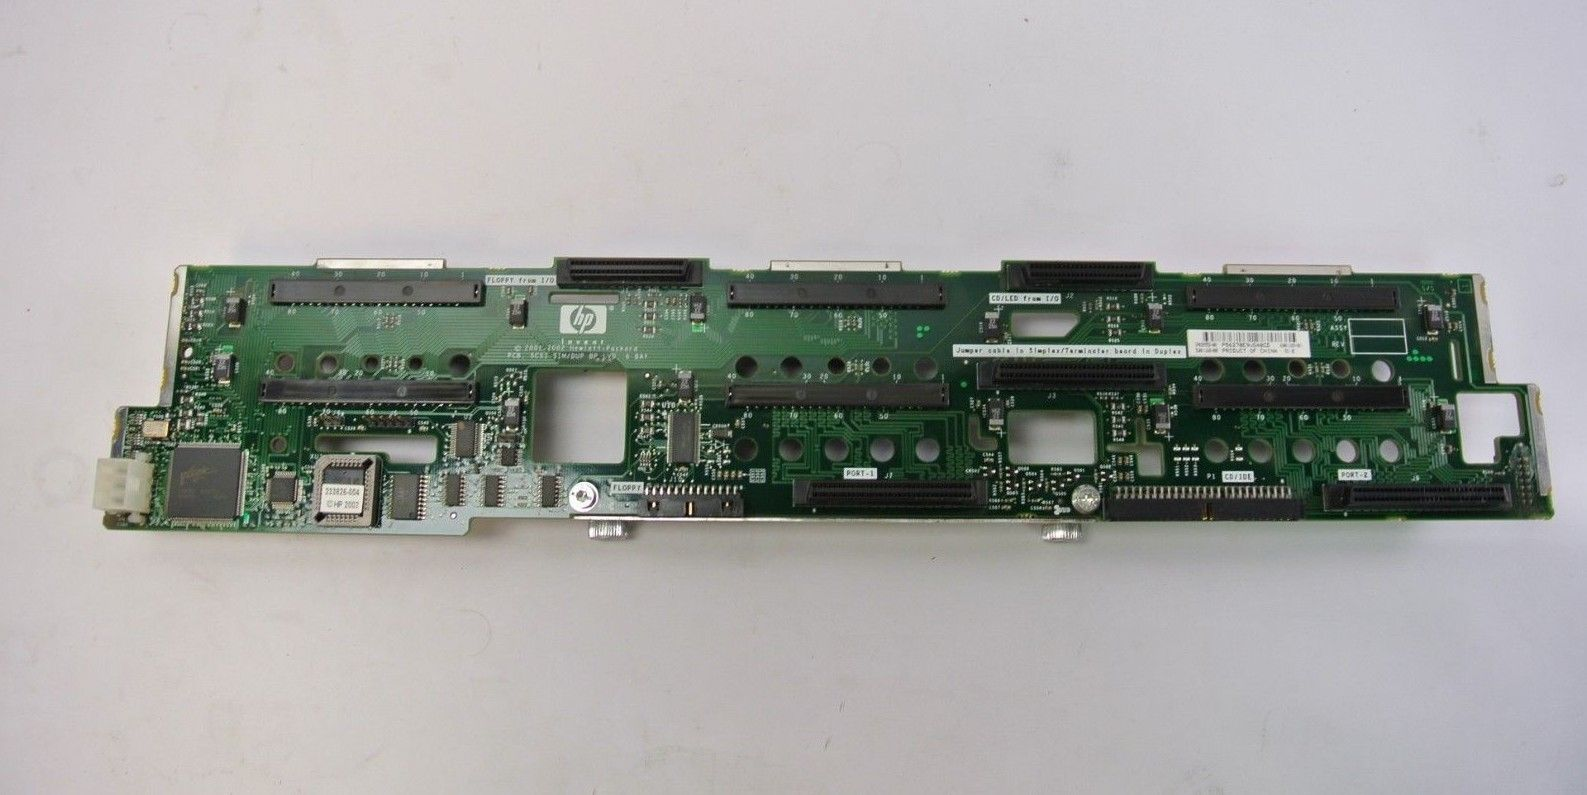 Primary image for HPCompaq 289552-001 6-bay SCSI Backplane Board for Proliant DL380 G3